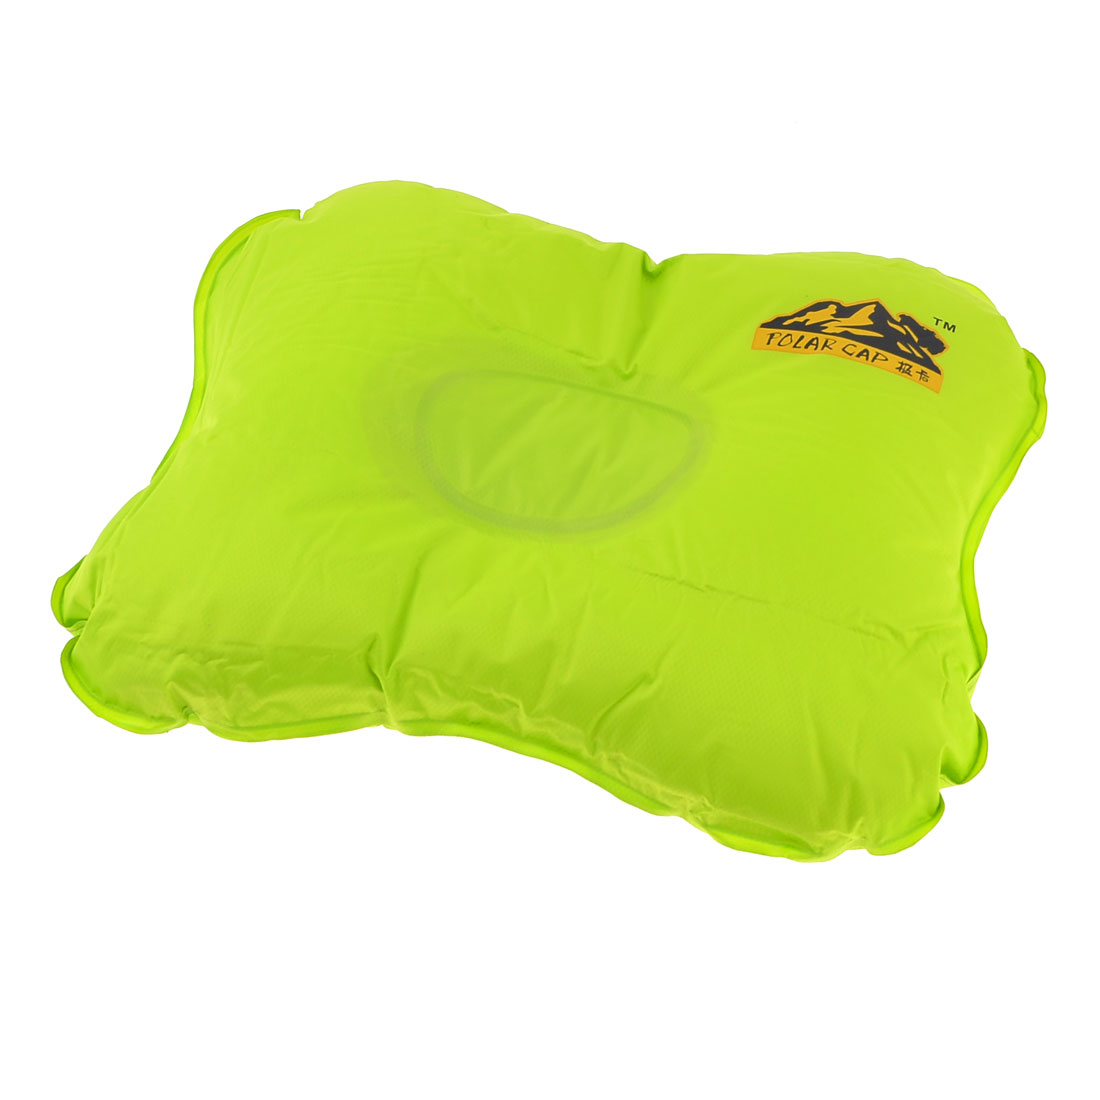 Light Green Automatic Inflatable Pillow Waist Back Seat Cushion for Car